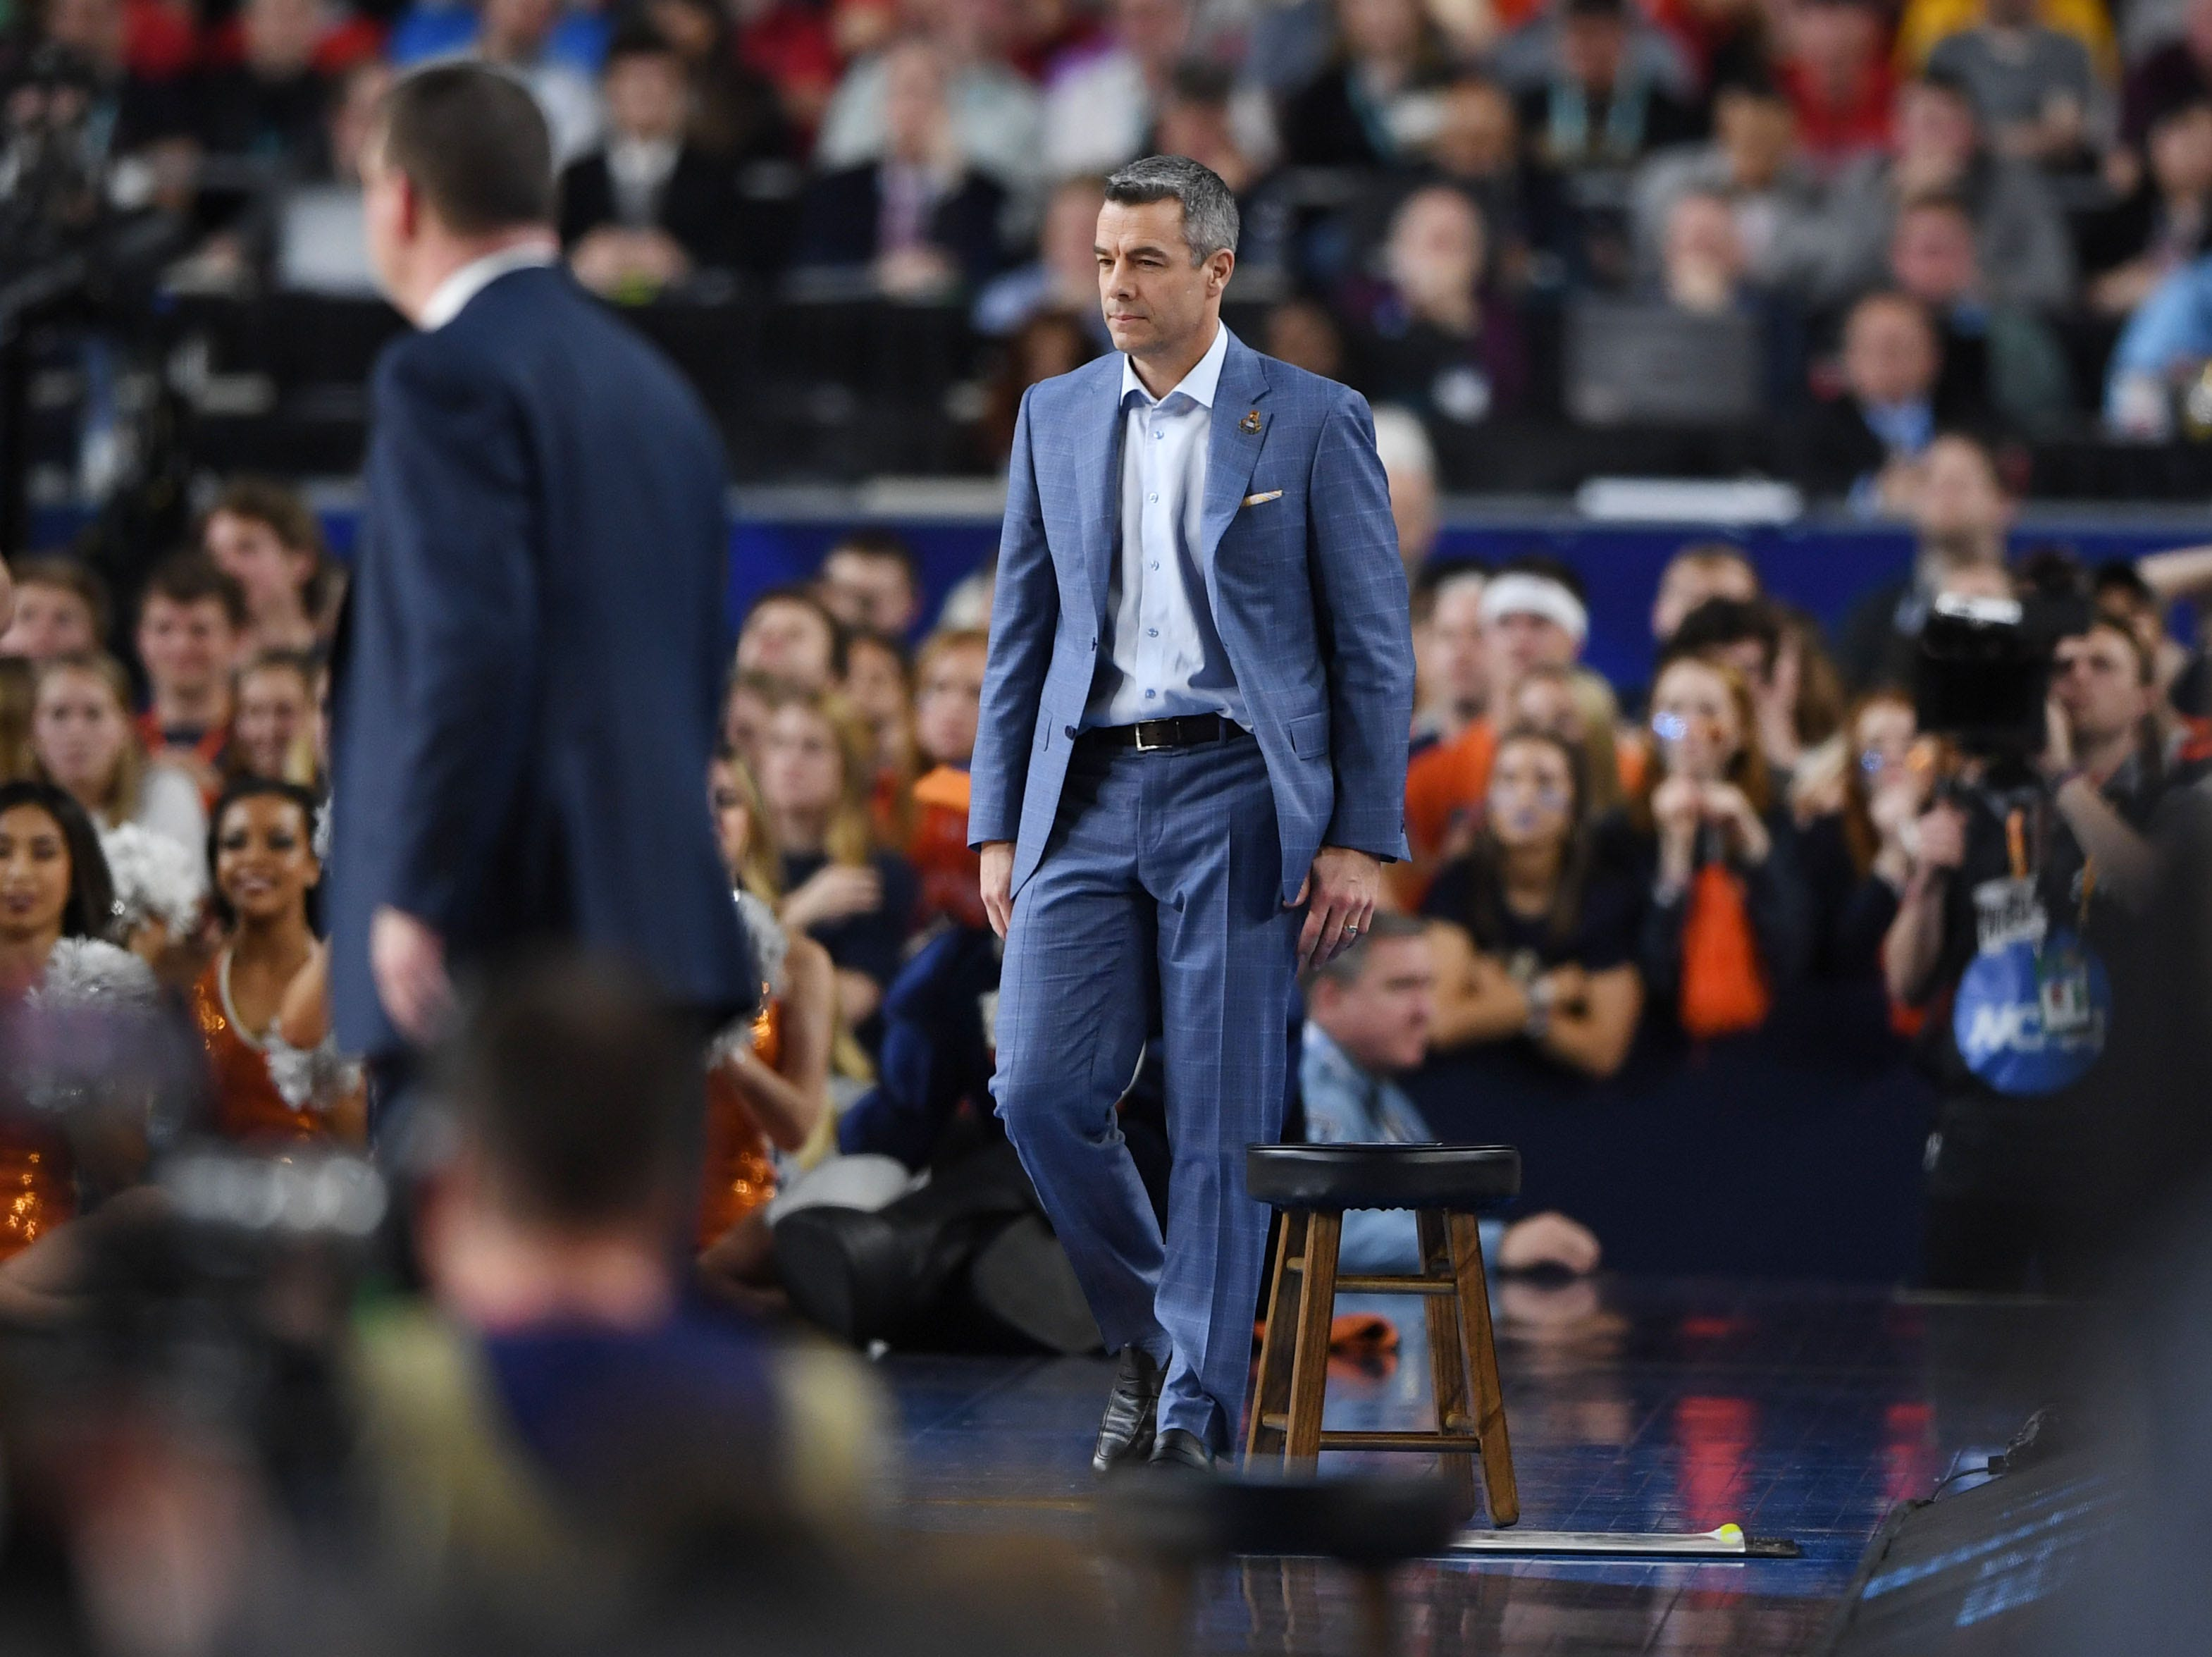 Apr 8, 2019; Minneapolis, MN, USA; Texas Tech Red Raiders head coach Chris Beard (left) and Virginia Cavaliers head coach Tony Bennett (right) in the championship game of the 2019 men's Final Four at US Bank Stadium. Mandatory Credit: Shanna Lockwood-USA TODAY Sports